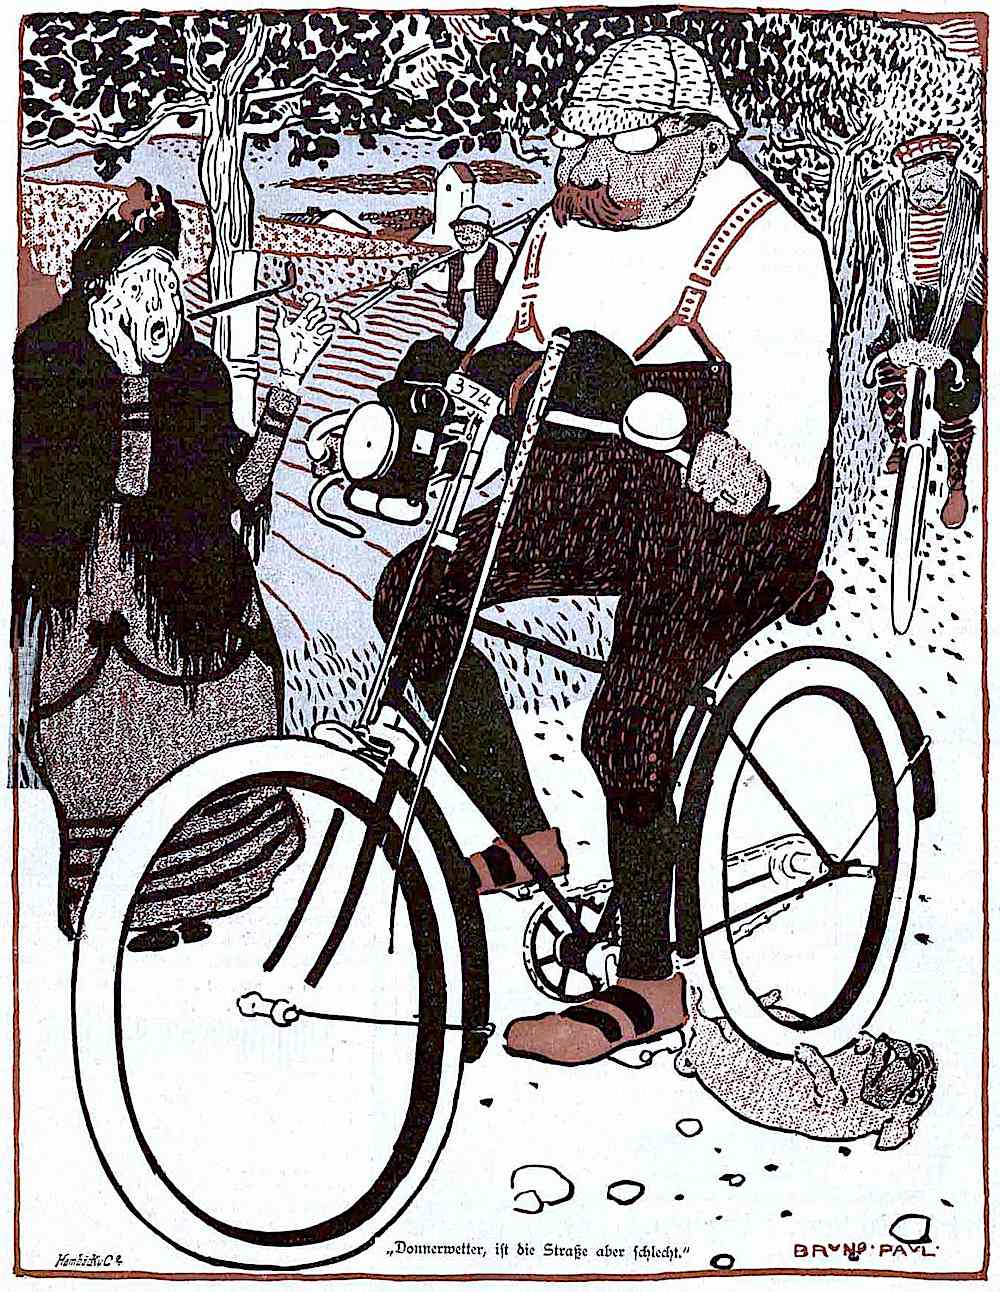 a Bruno Paul cartoon about bicycling etiquette